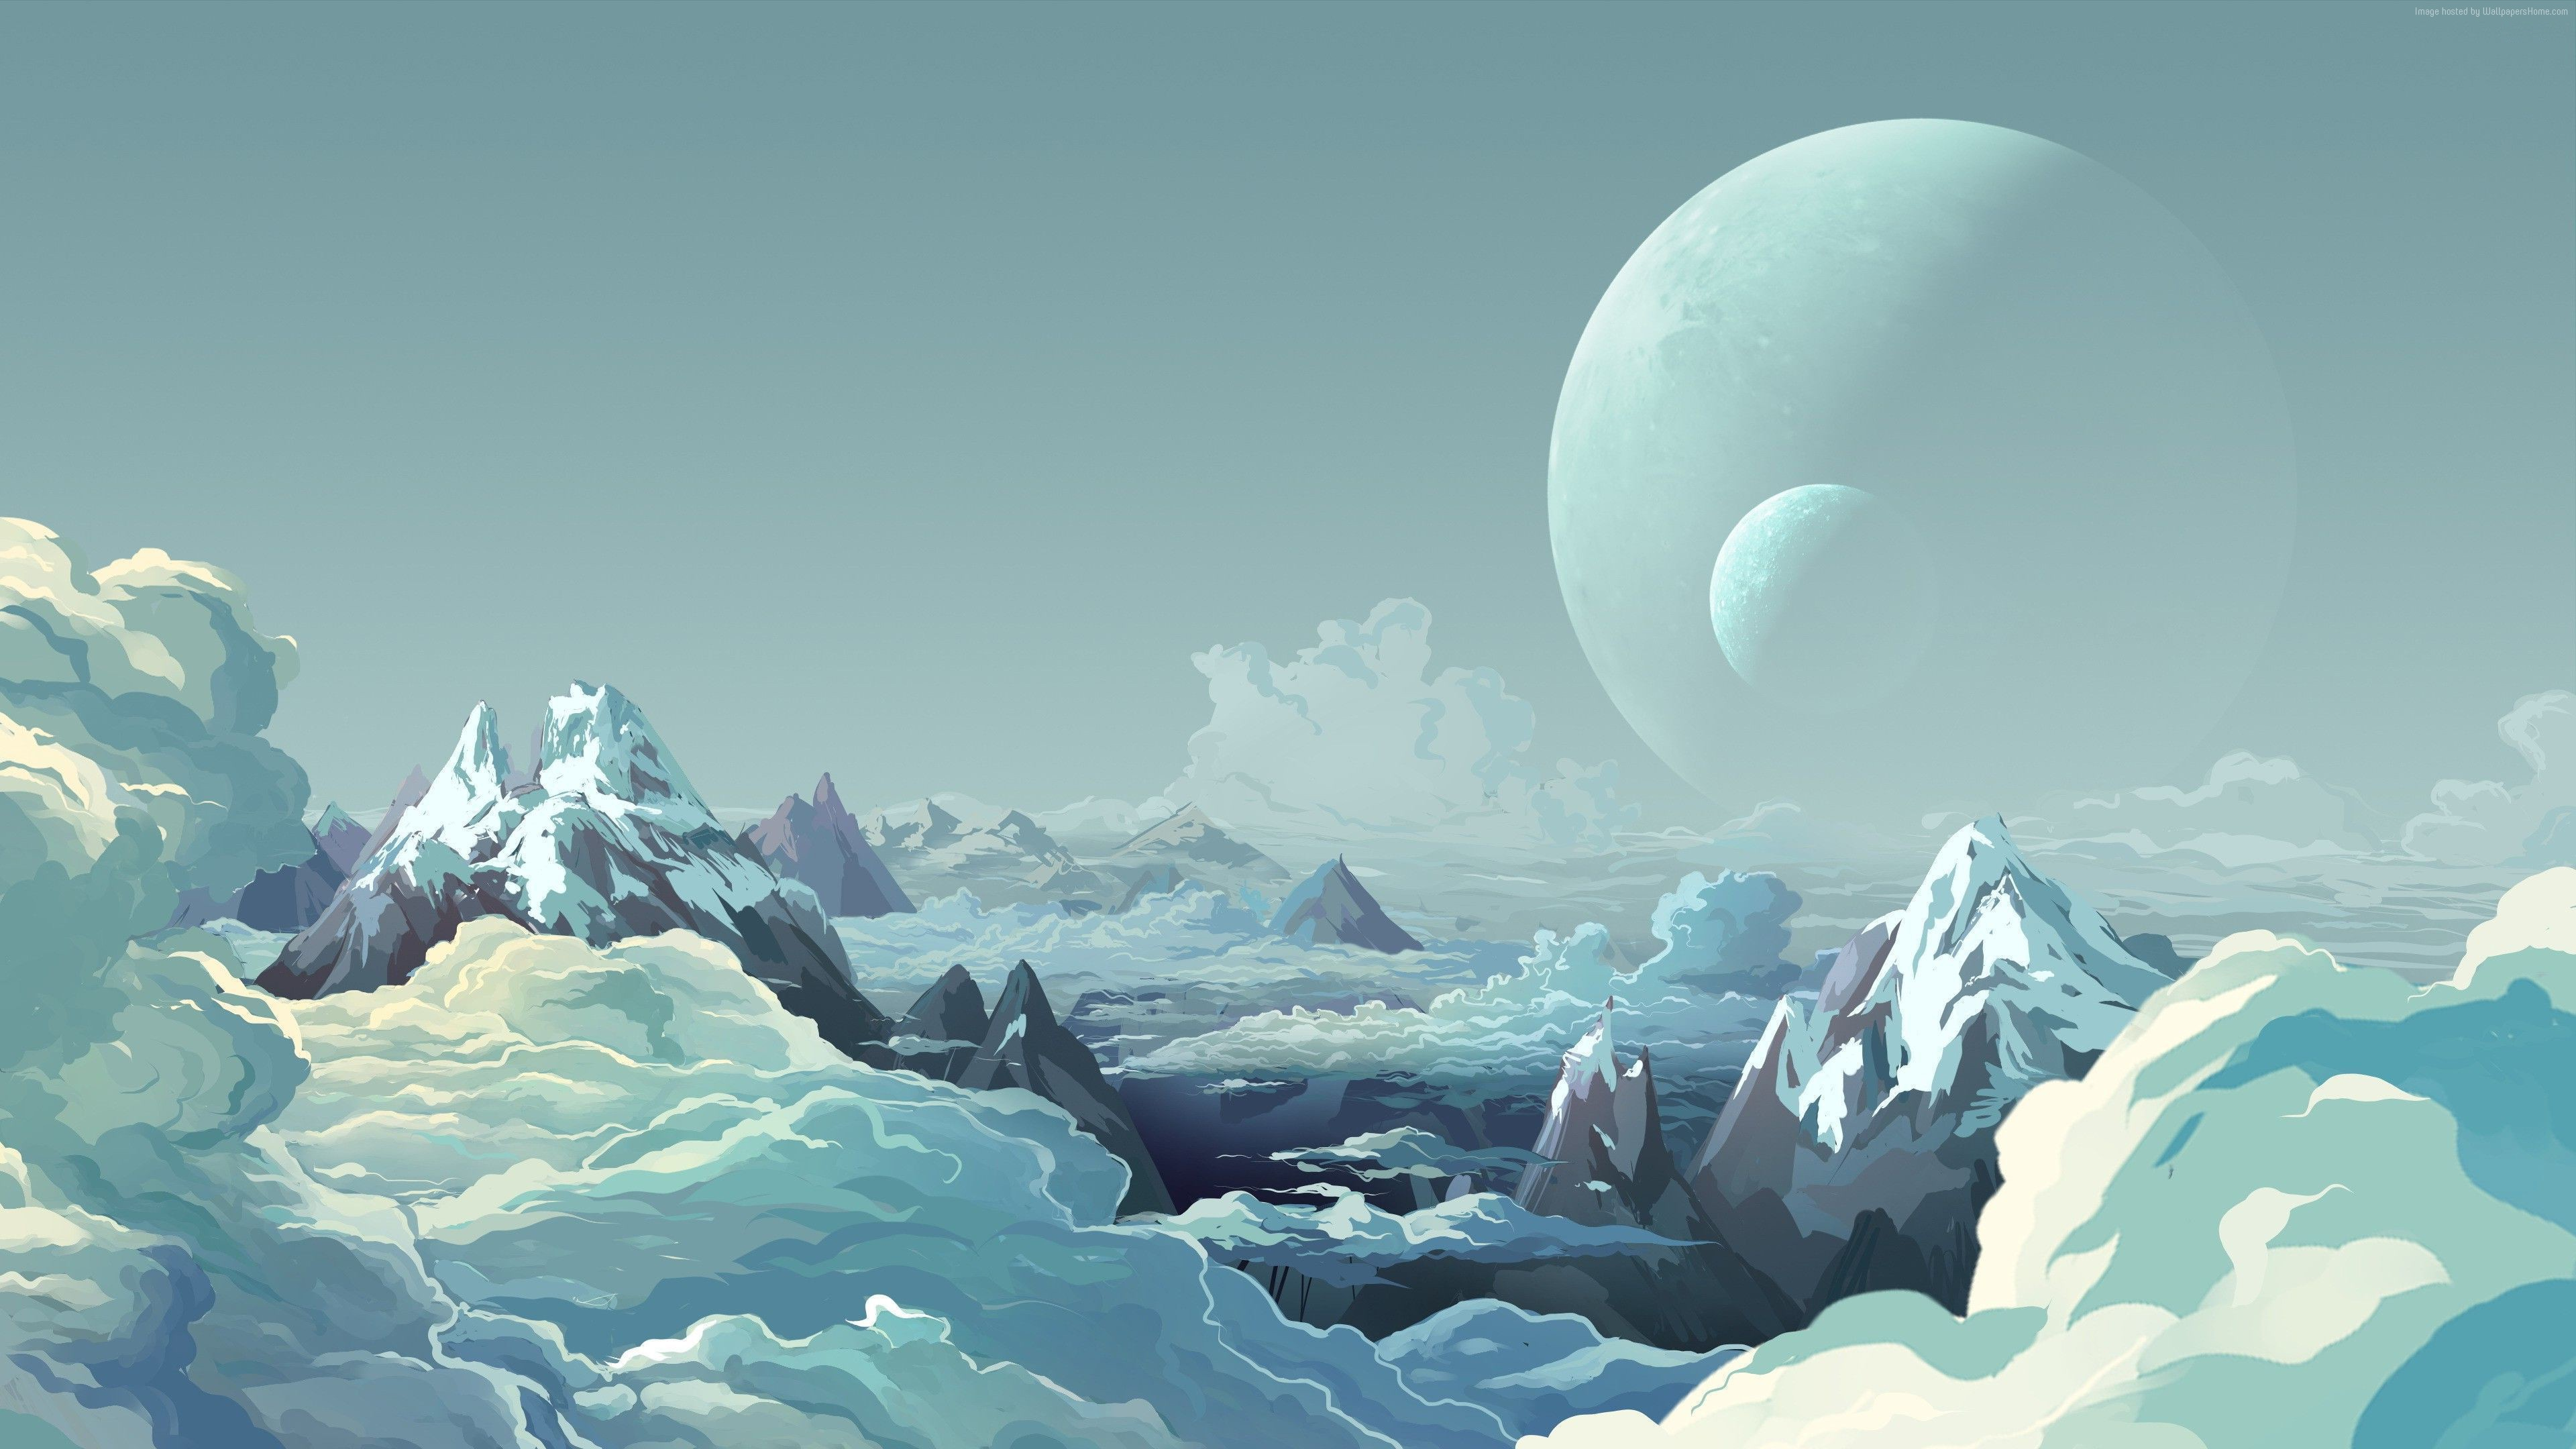 Mountains Clouds Planets Snow 2179 Wallpapers and Stock 3840x2160